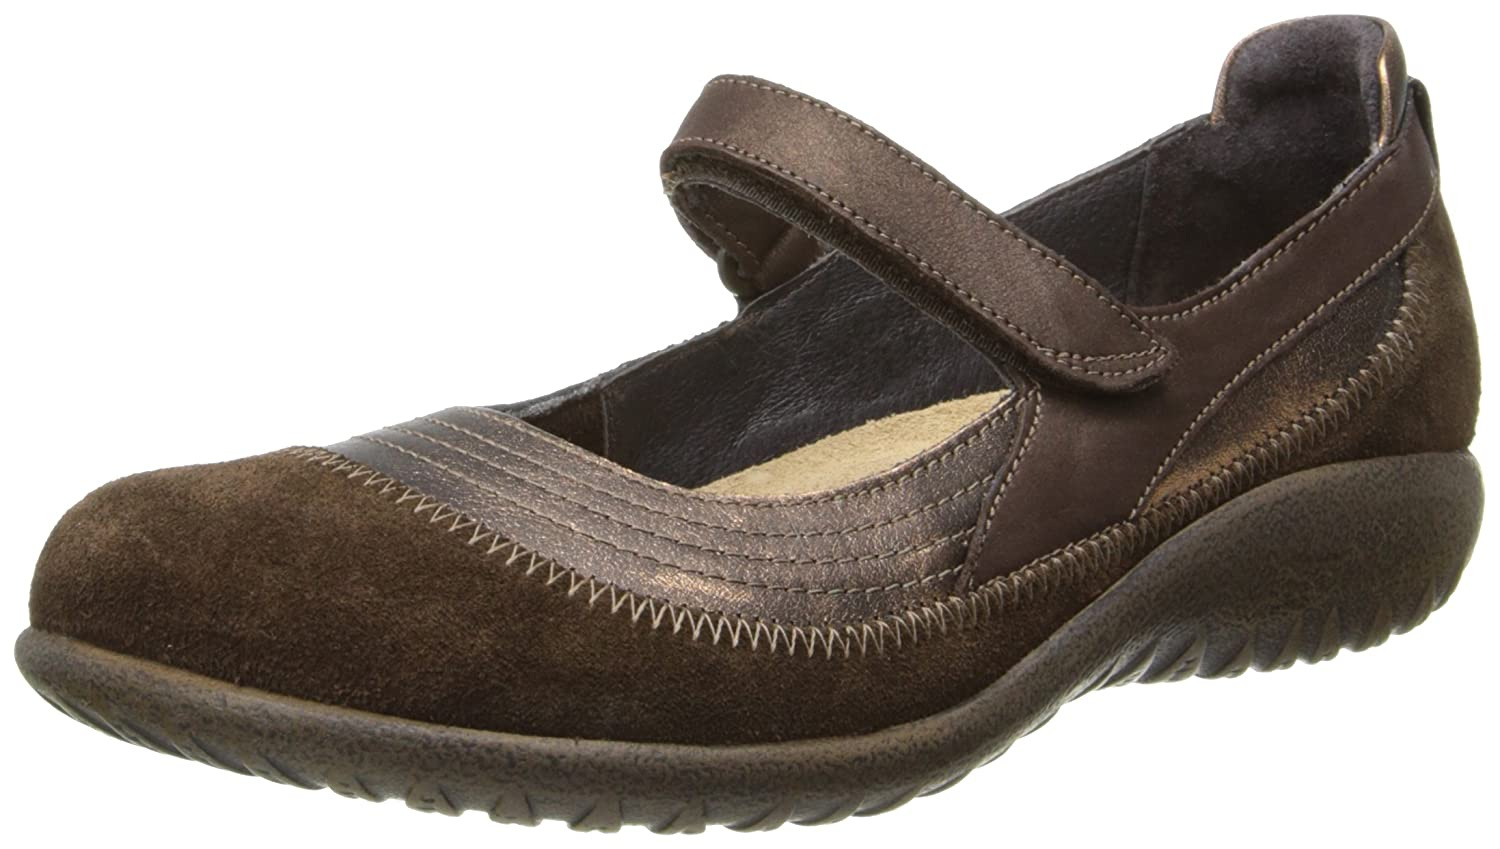 NAOT Footwear Women's Kirei Mary Jane Flat B005JHGISC 43 EU/11.5-12 M US|Burnt Copper Leather/Cocoa Suede/Brown Shimmer Nubuck